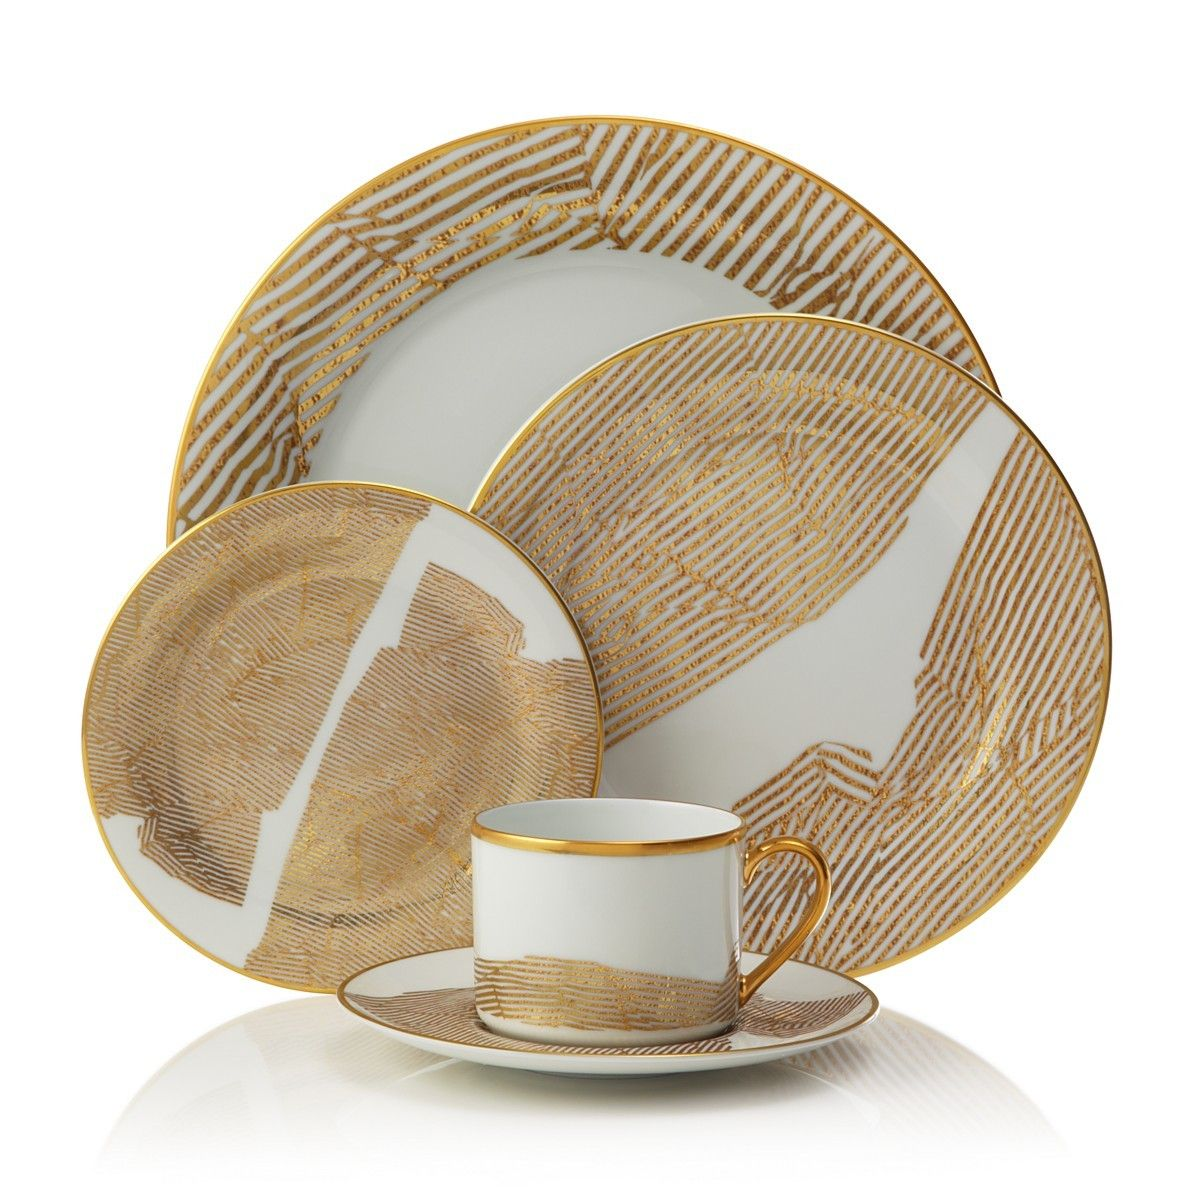 Contemporary China Sets For The Holidays I Modern Dinnerware Kelly Wearstler Latest House Designs